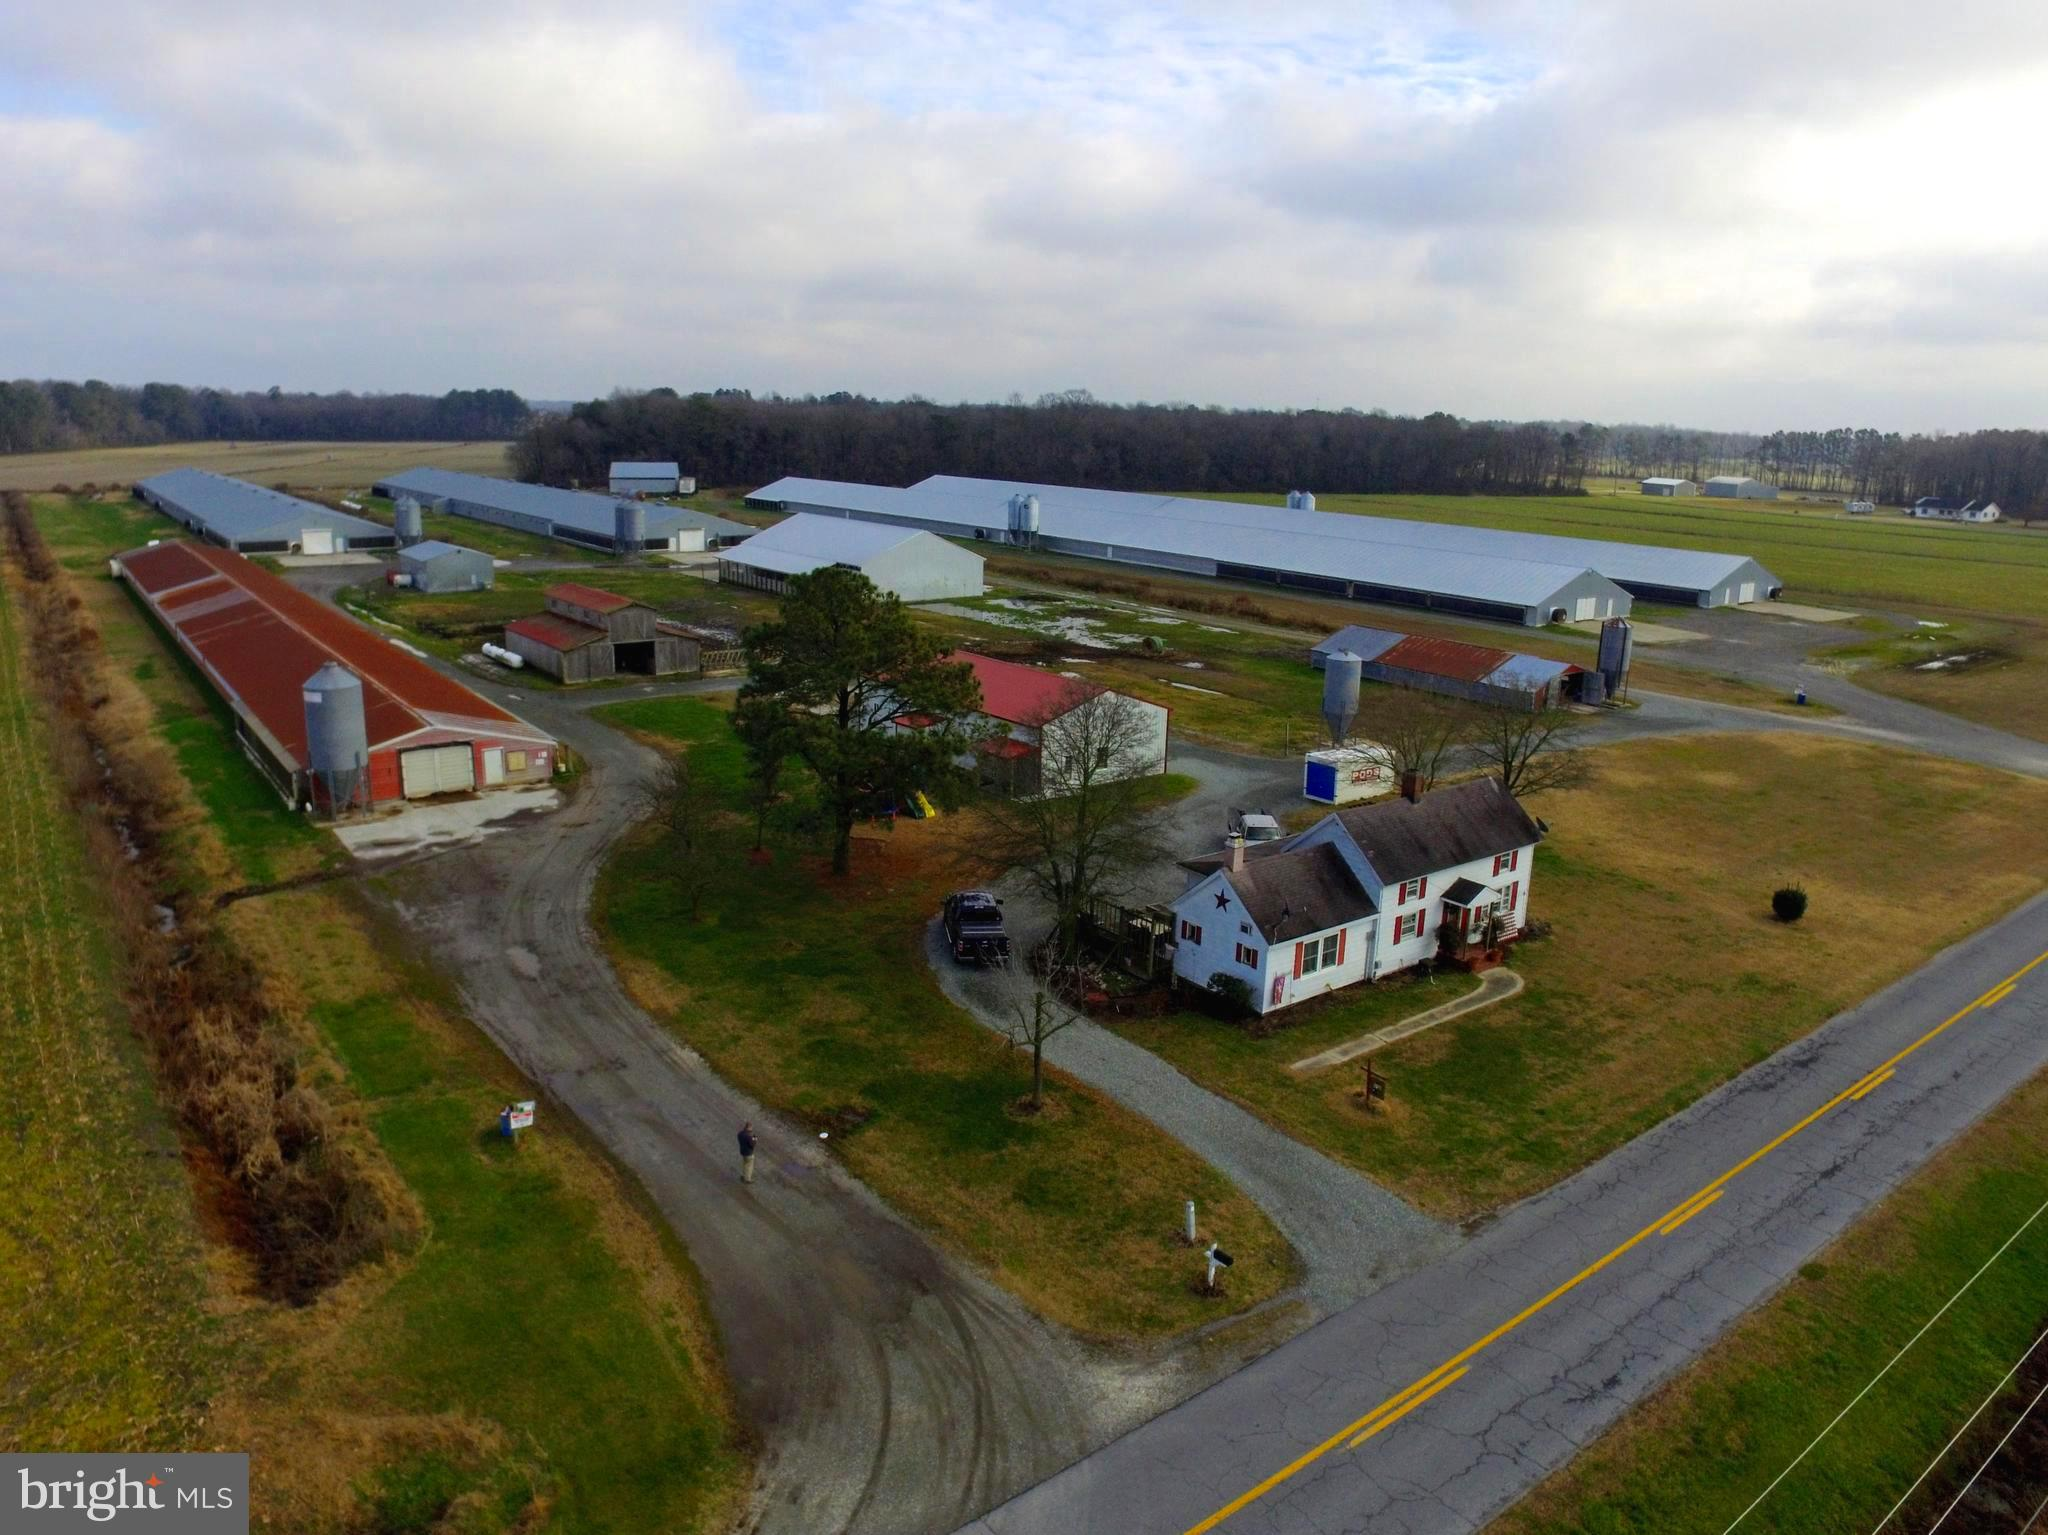 Established and fully operational poultry farm with home and multiple outbuildings. Farm consists of a total of 5 working poultry houses (1- 40x400; 2- 66x500; 2 60x600). The 2 - 66x500 houses were built around 2005 and the 2 - 60x600 were built around 2016.  Sellers have made recent upgrades to the poultry houses.  Property consists of a new manure shed with attached composter, an older manure shed at the back of the property which is currently being used for storage, 2 generator sheds each with generators, 1 horse barn with 6 stalls & loft, one large detached garage/shop with rest room, 4 wells, a 2 story farmhouse with 3 bedrooms and 1 bath. The 16.73 acres are made up of 2 parcels (9.196 acres with farmhouse and 7.53 acres with the 2 newer poultry houses). Please call for more information or to make arrangements to schedule a showing of this property. Showings are by approved scheduled appointments only. Do NOT Drive onto property without approved appointment.